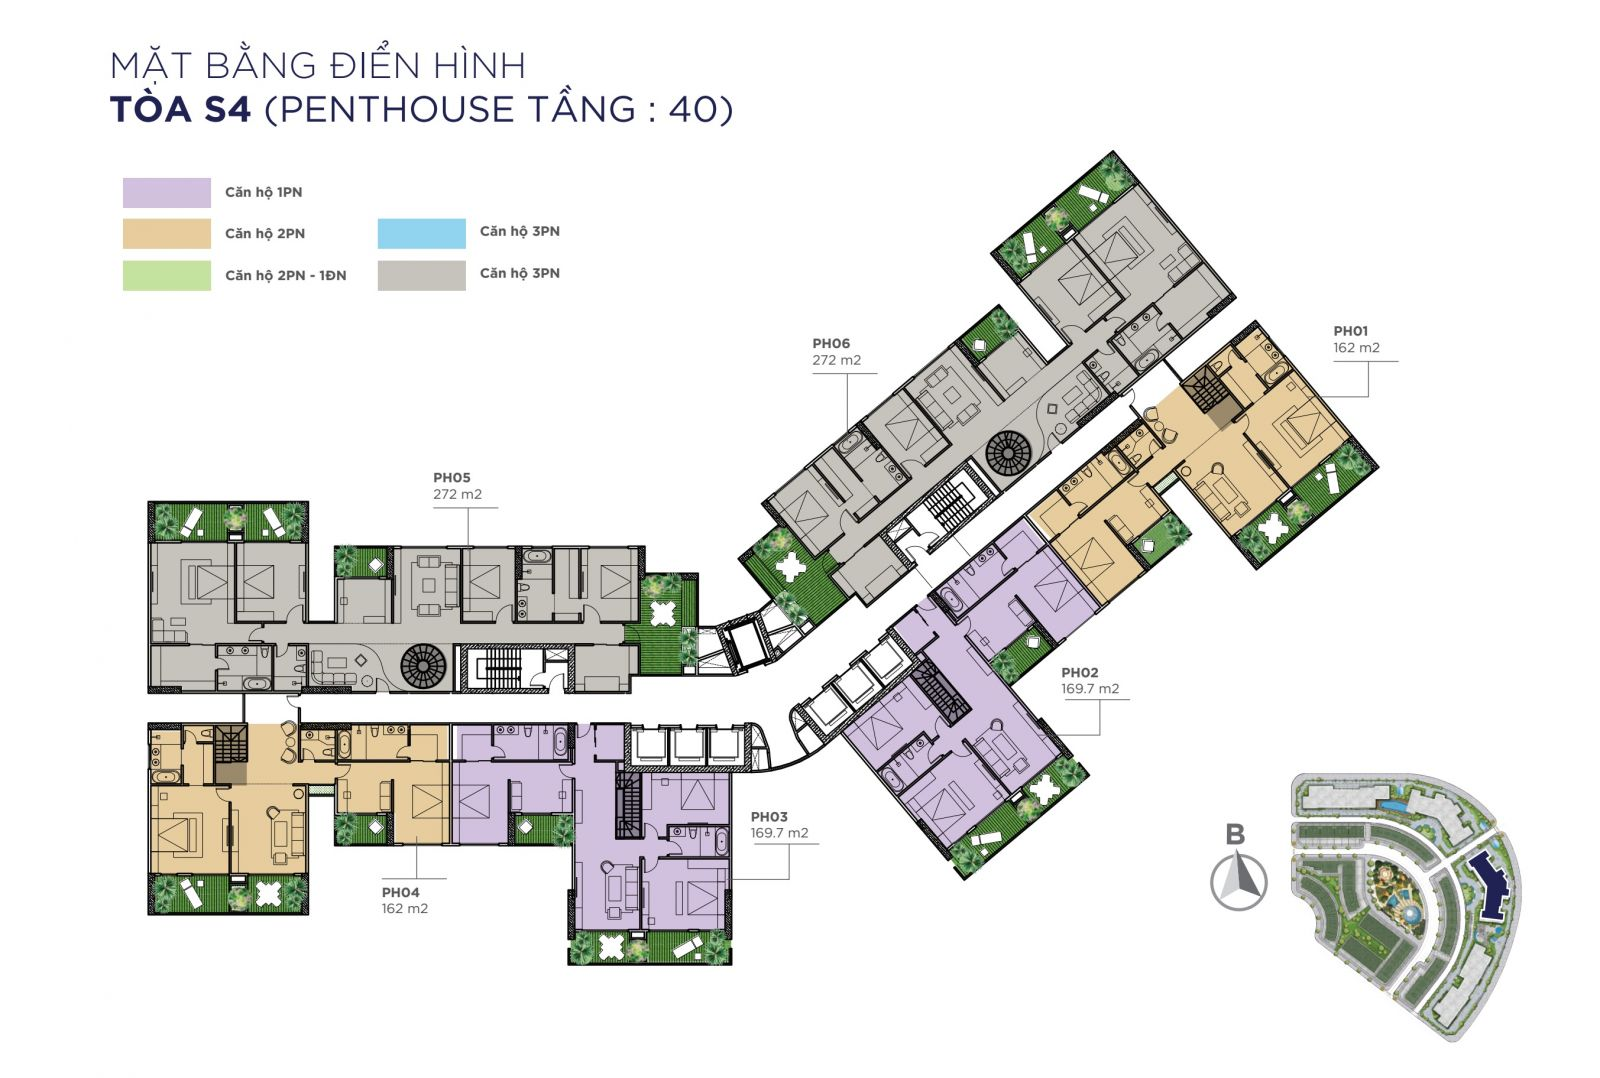 penthouse tầng 40